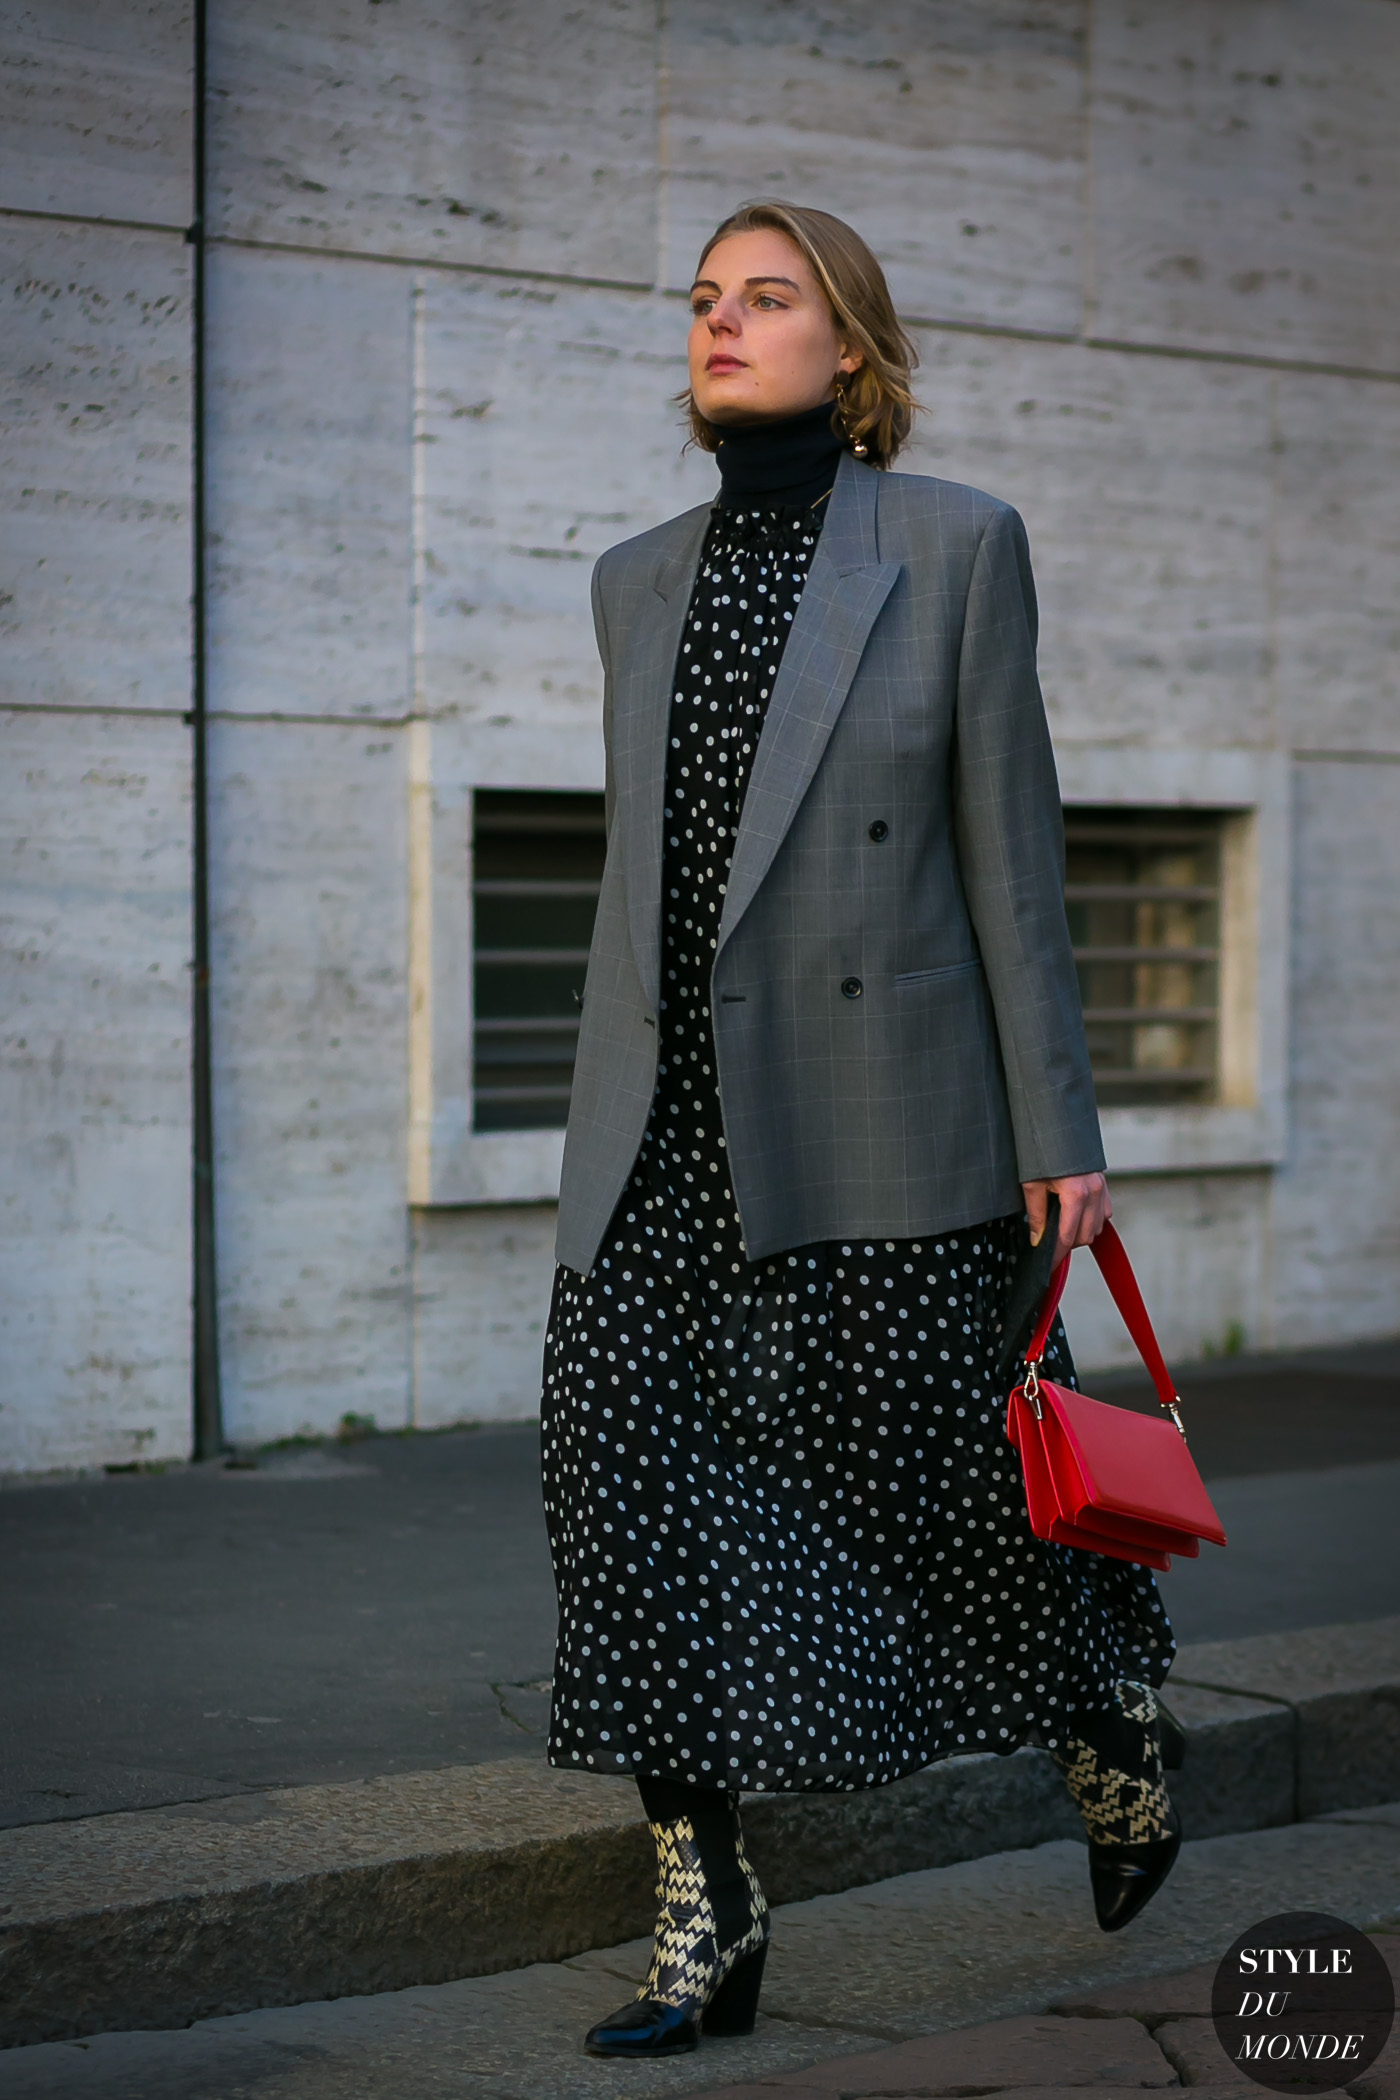 Claire Beermann by STYLEDUMONDE Street Style Fashion Photography